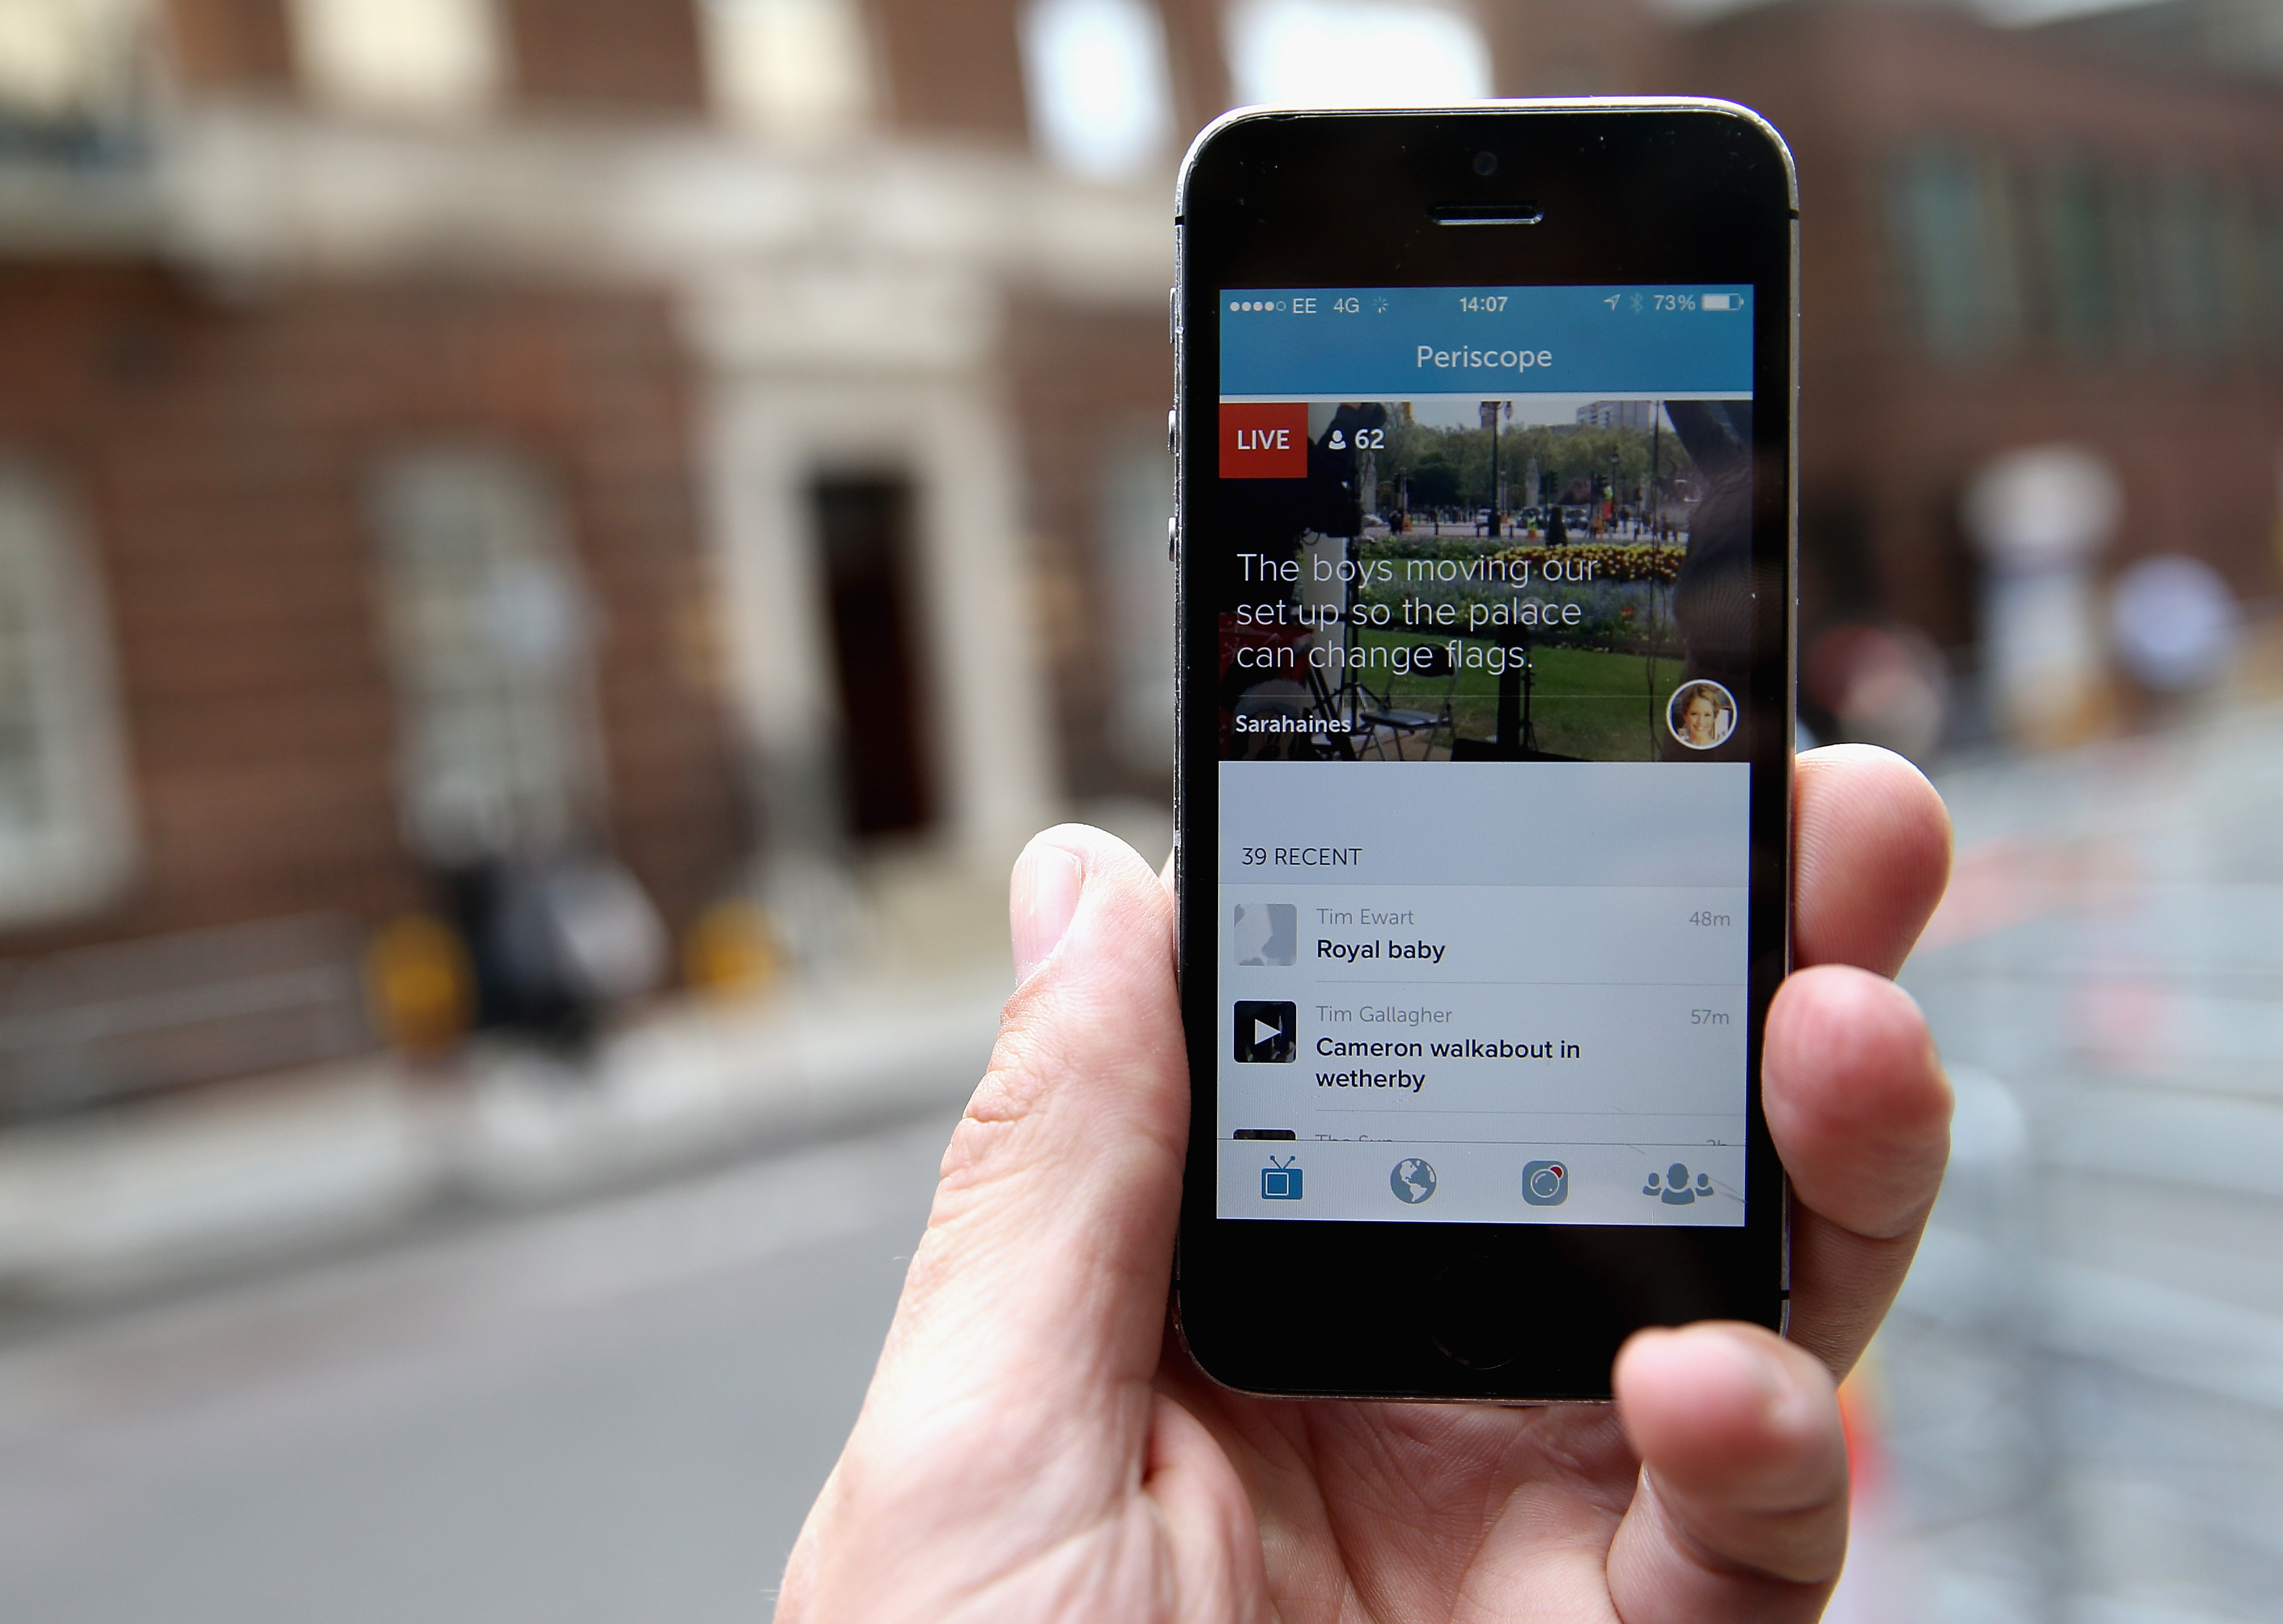 Links to clips related to the new royal baby are seen on the app Periscope at the Lindo wing as the World's media wait for Catherine, Duchess of Cambridge to go into labour at St Mary's Hospital on April 30, 2015 in London, England.